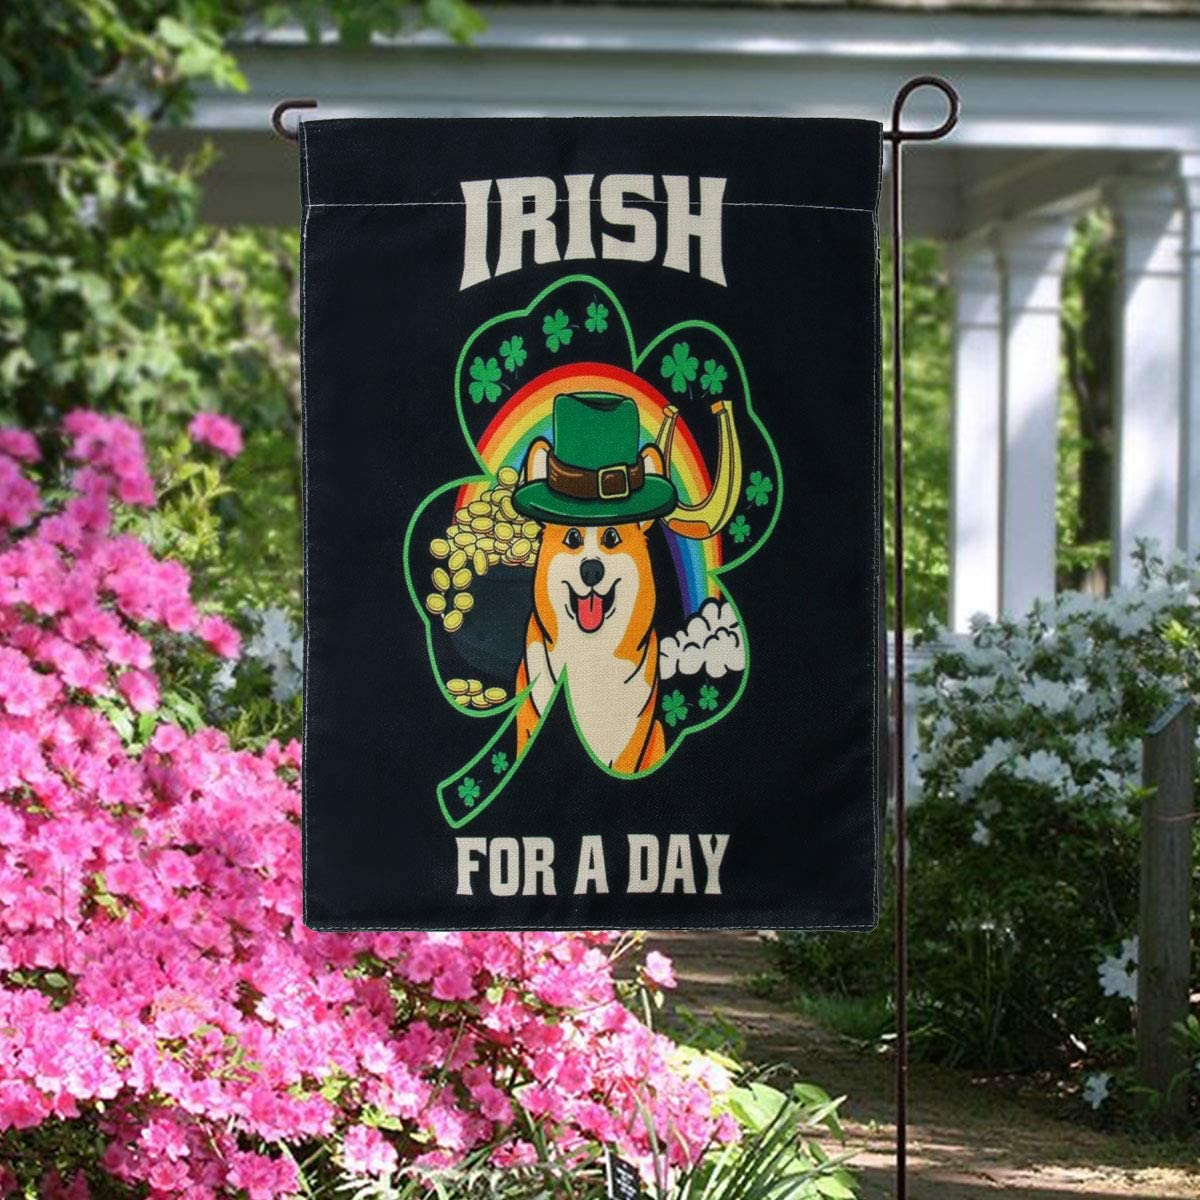 FirstCos Funny Trump St. Patrick's Day Garden Flag Burlap Double Sided 12 x 18 Inch Irish Holiday Green Decorative House Yard Outdoor Flag